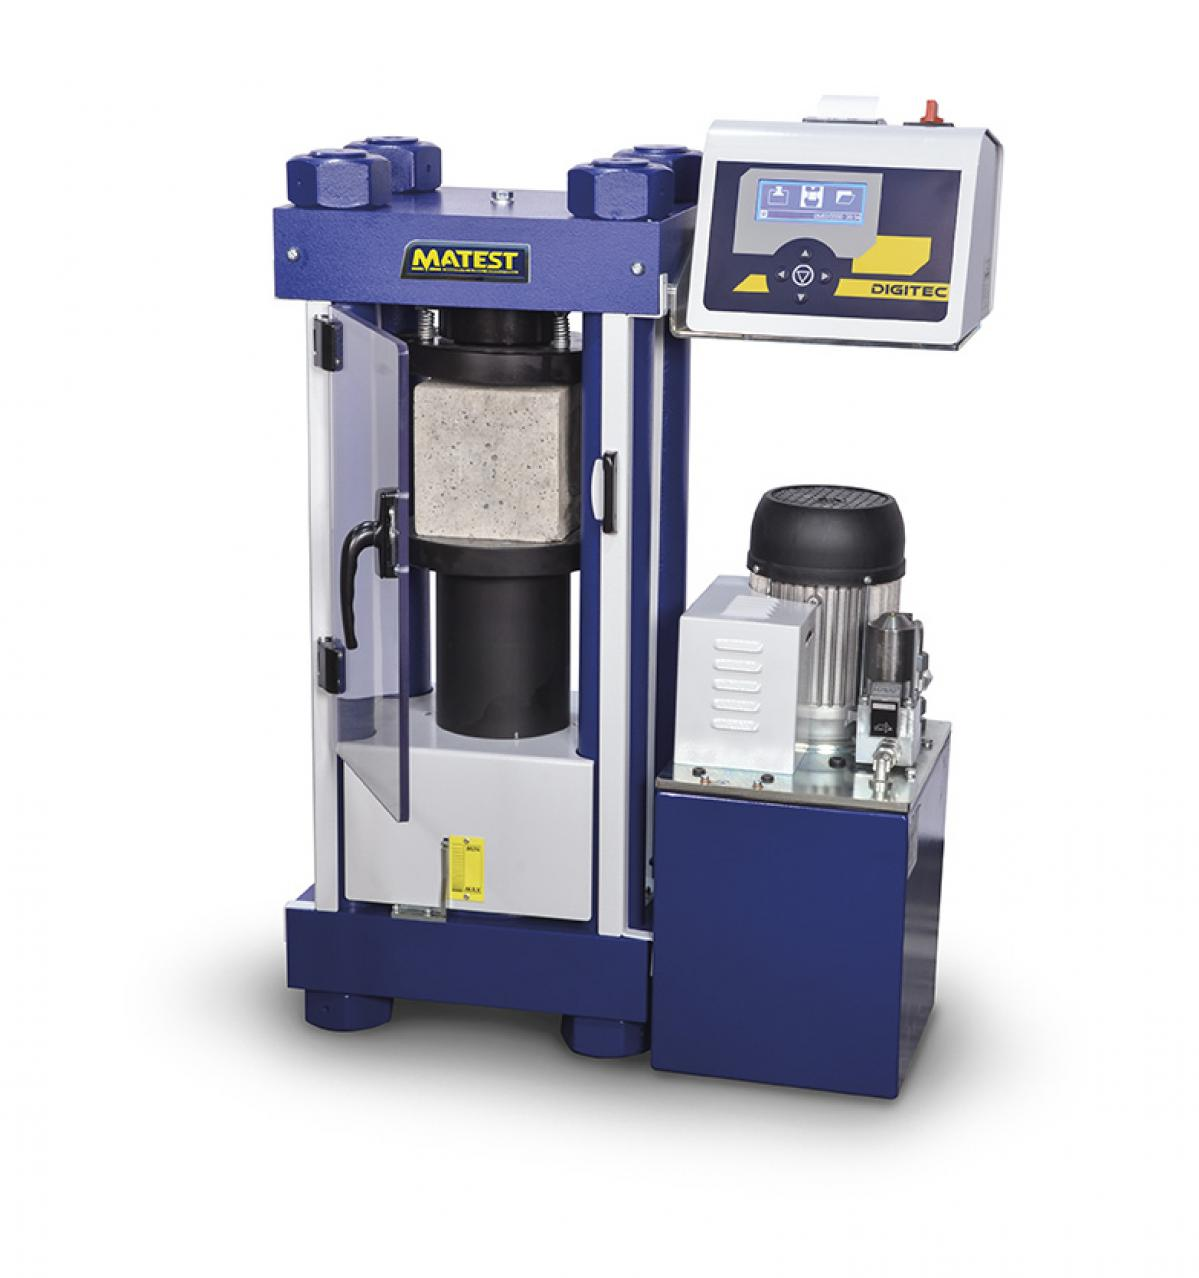 1300 kN Compression Machines